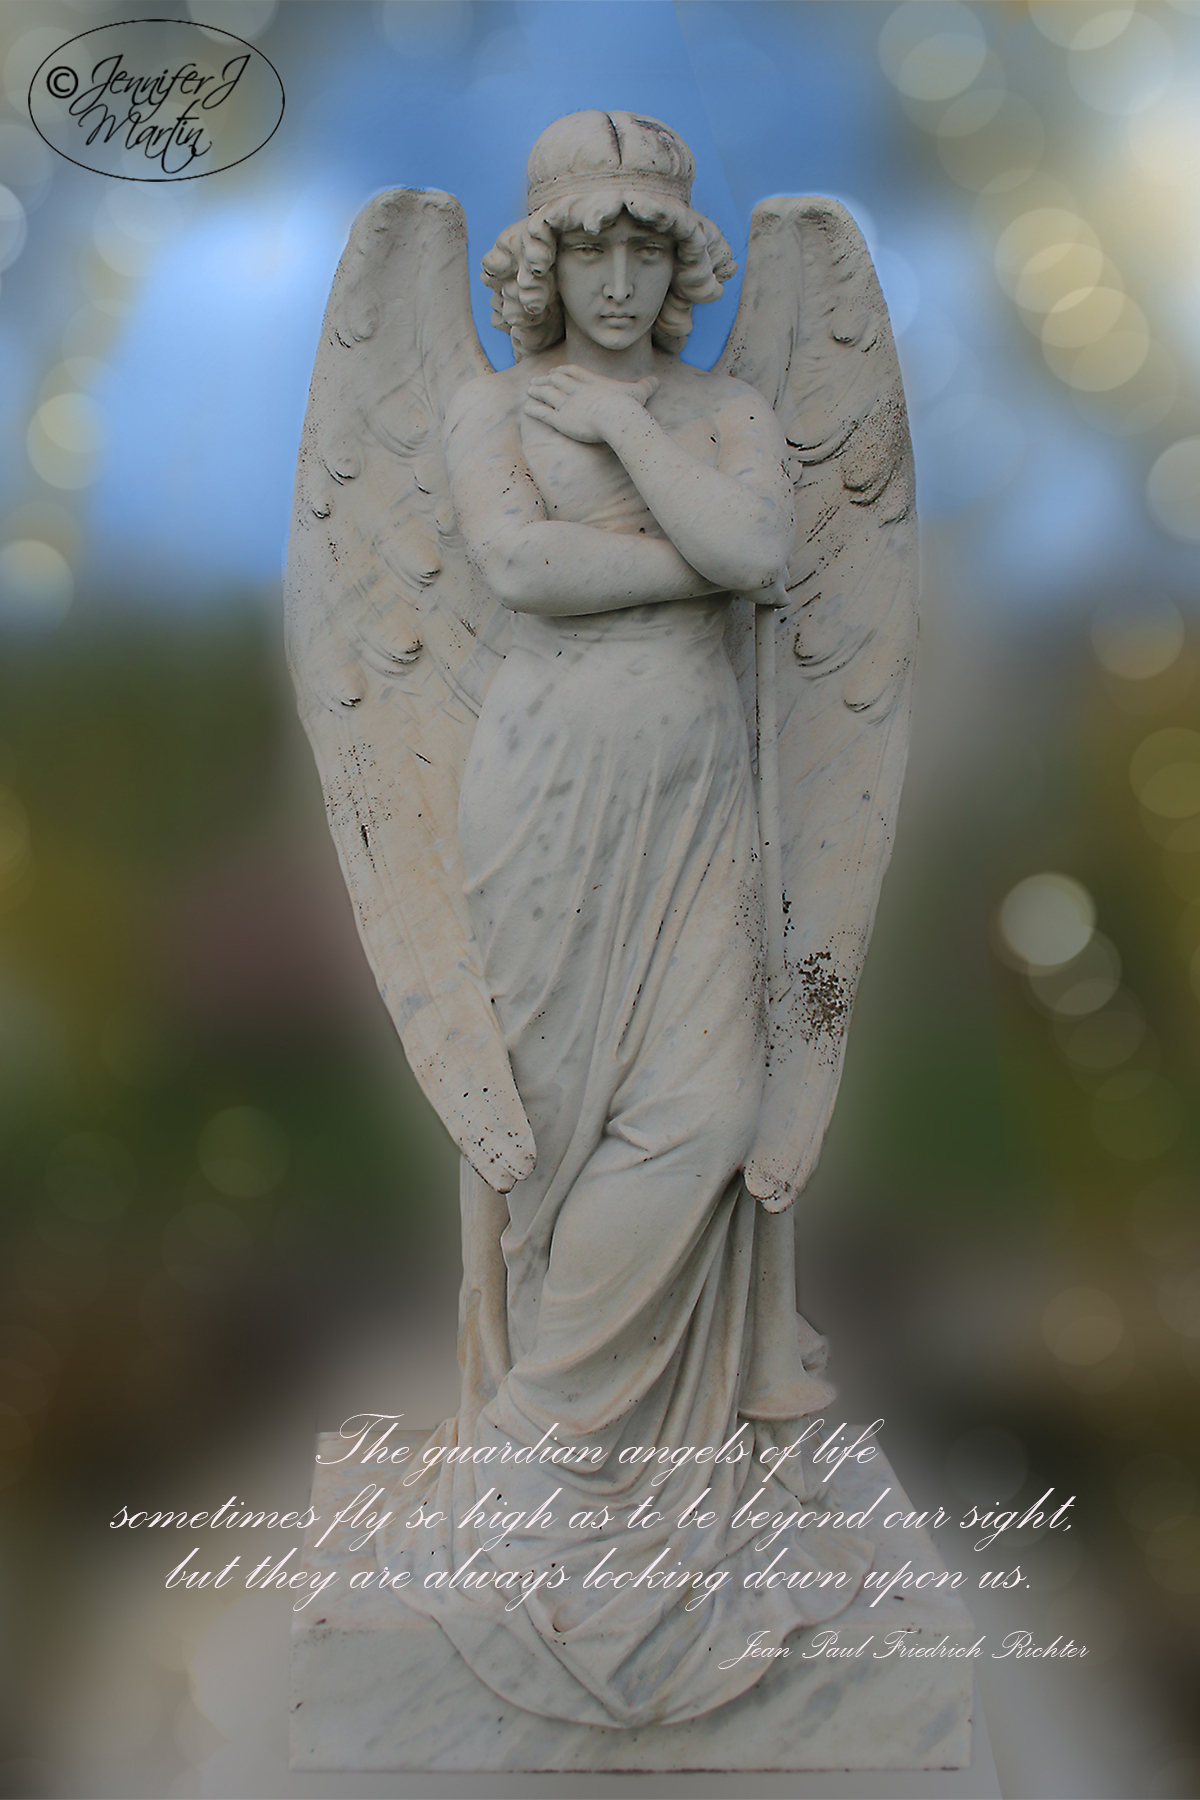 Guardian Angel - (With Guardian Angel Quote) Print